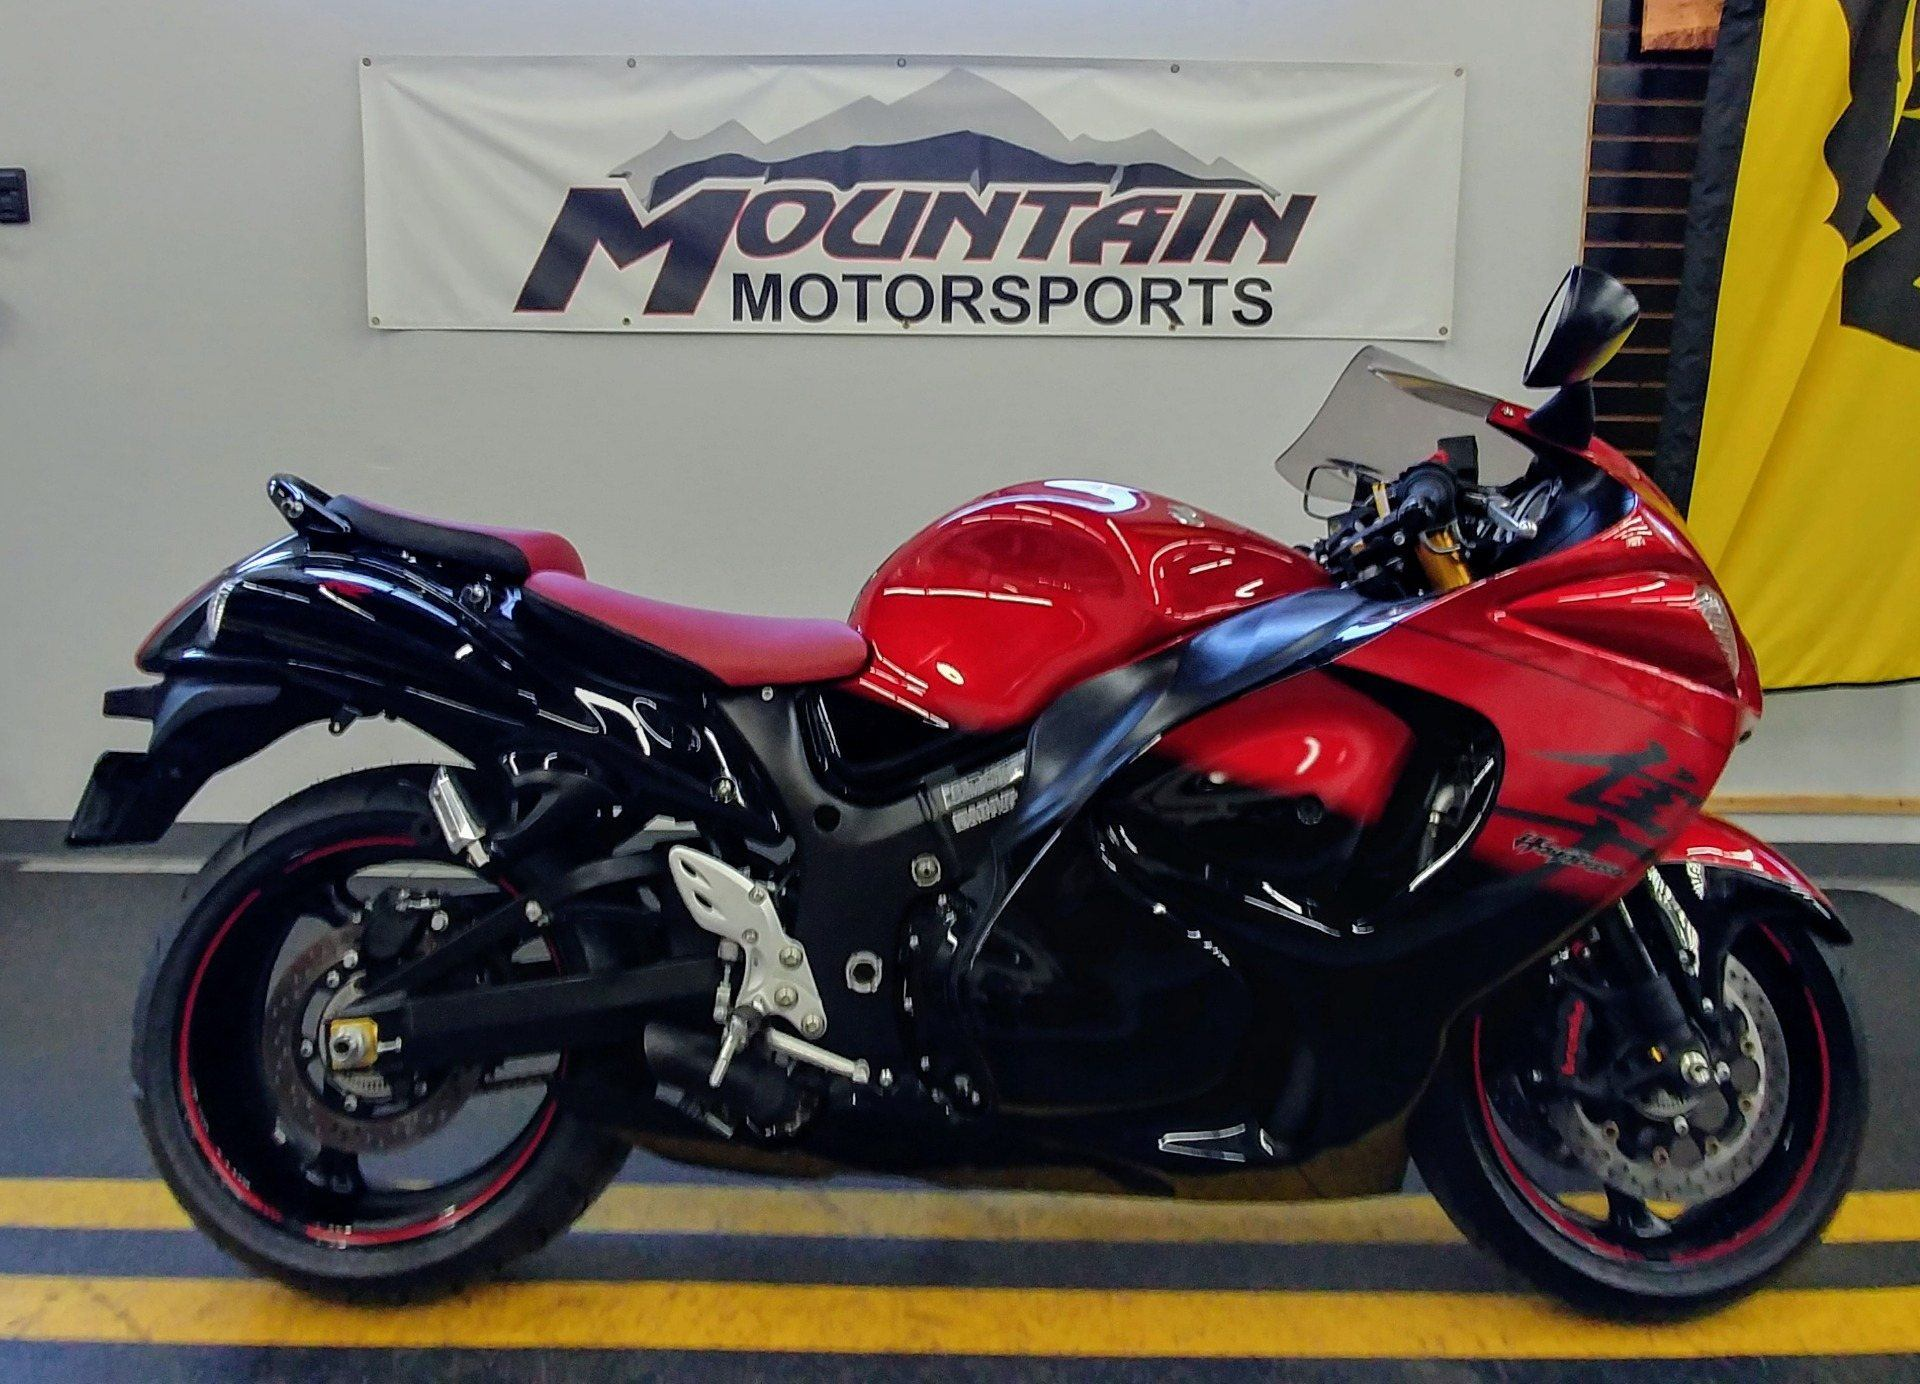 Used 2014 Suzuki Hayabusa 50th Anniversary Edition Motorcycles in ...